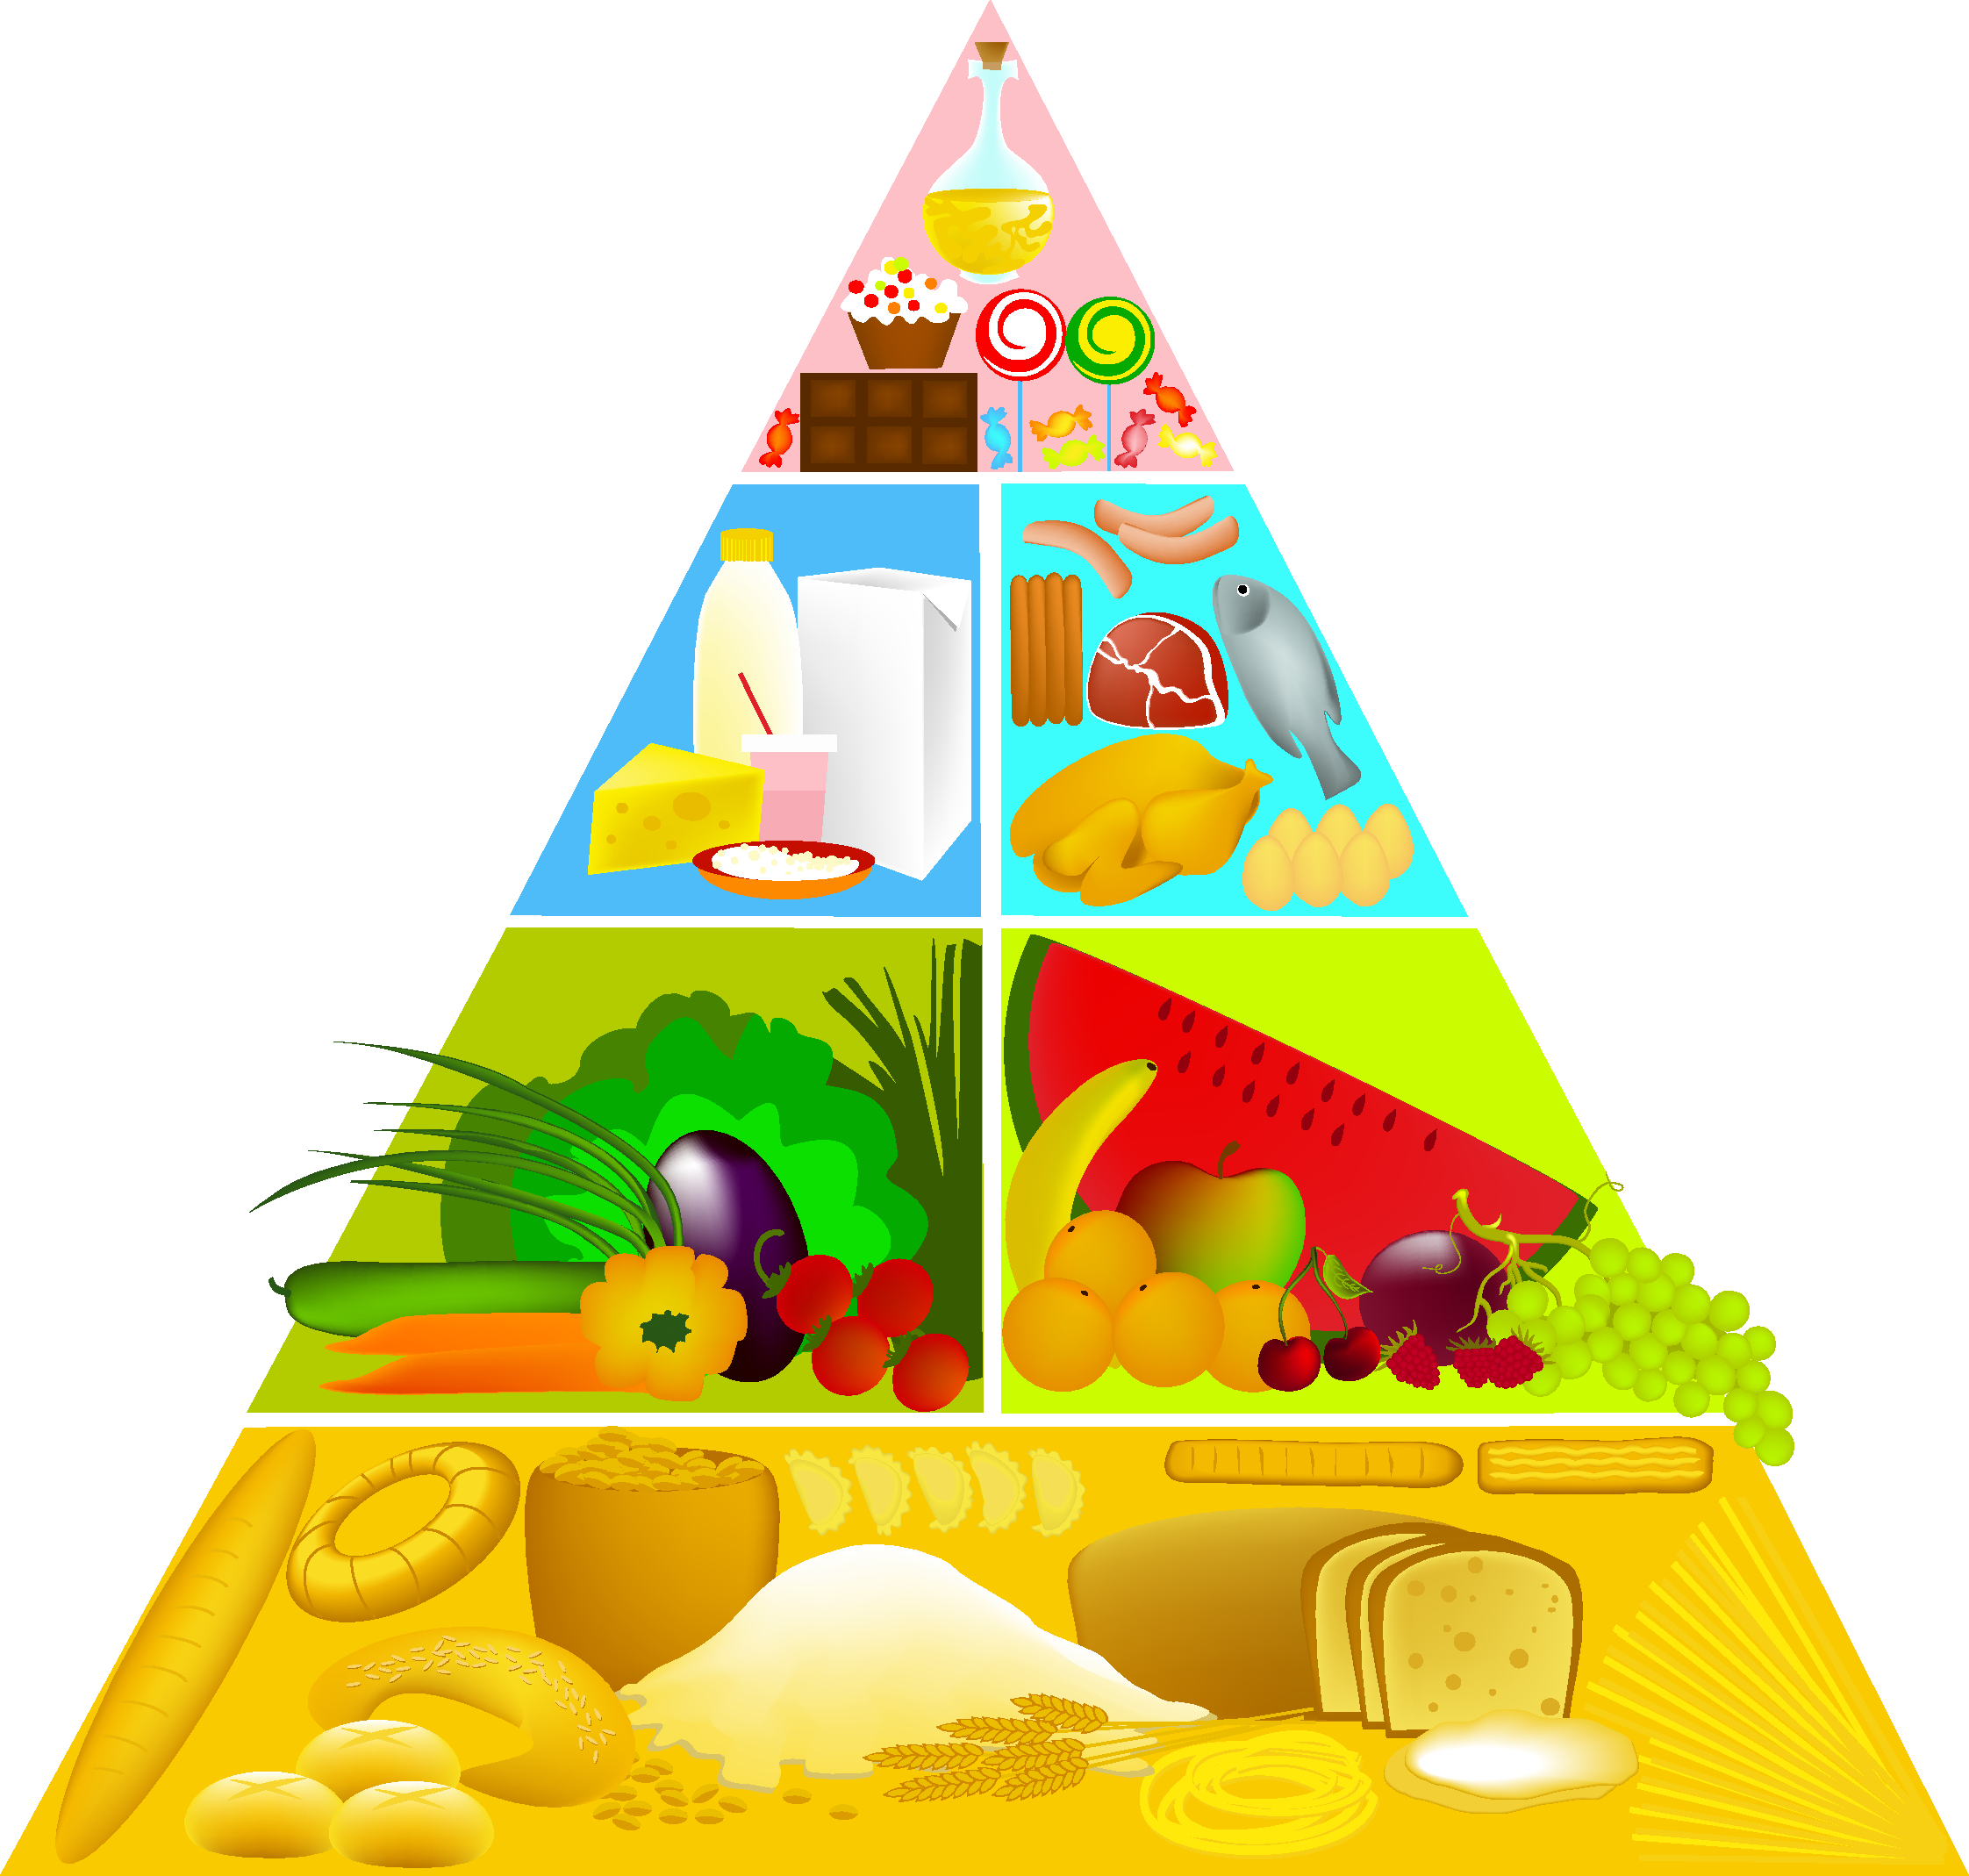 Food pyramid png. Stock illustration clip art